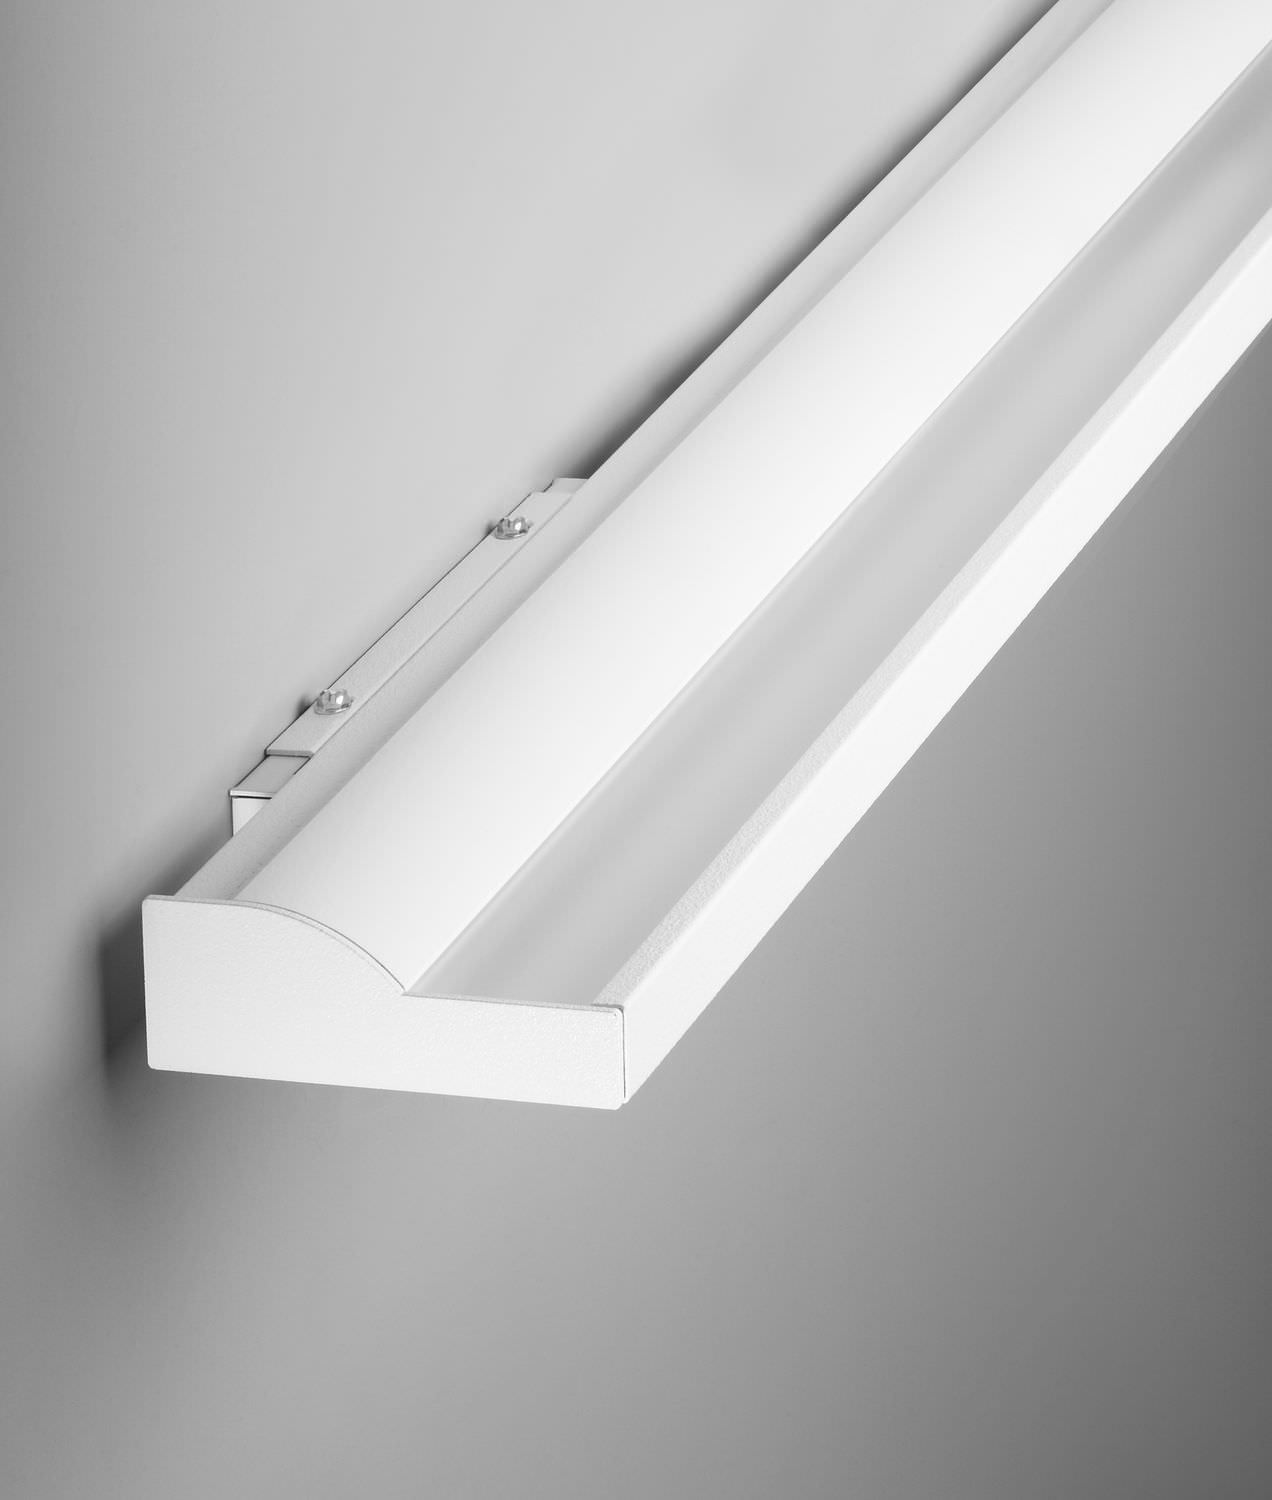 Fluorescent cove lighting fixtures httpdeai rankfo fluorescent cove lighting fixtures arubaitofo Choice Image